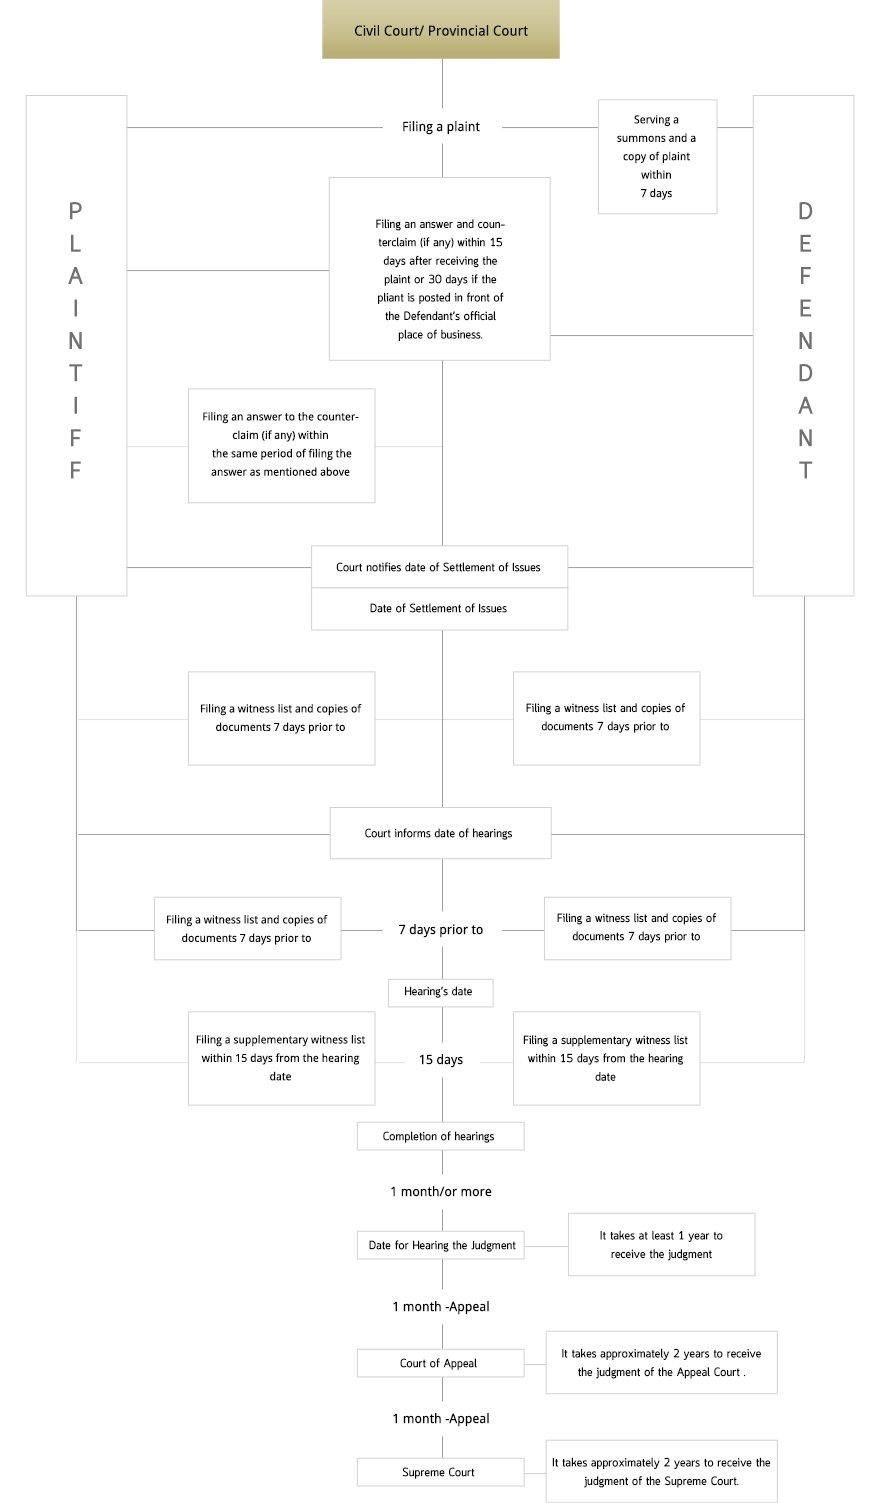 civil-case-procedure-flowchart_07